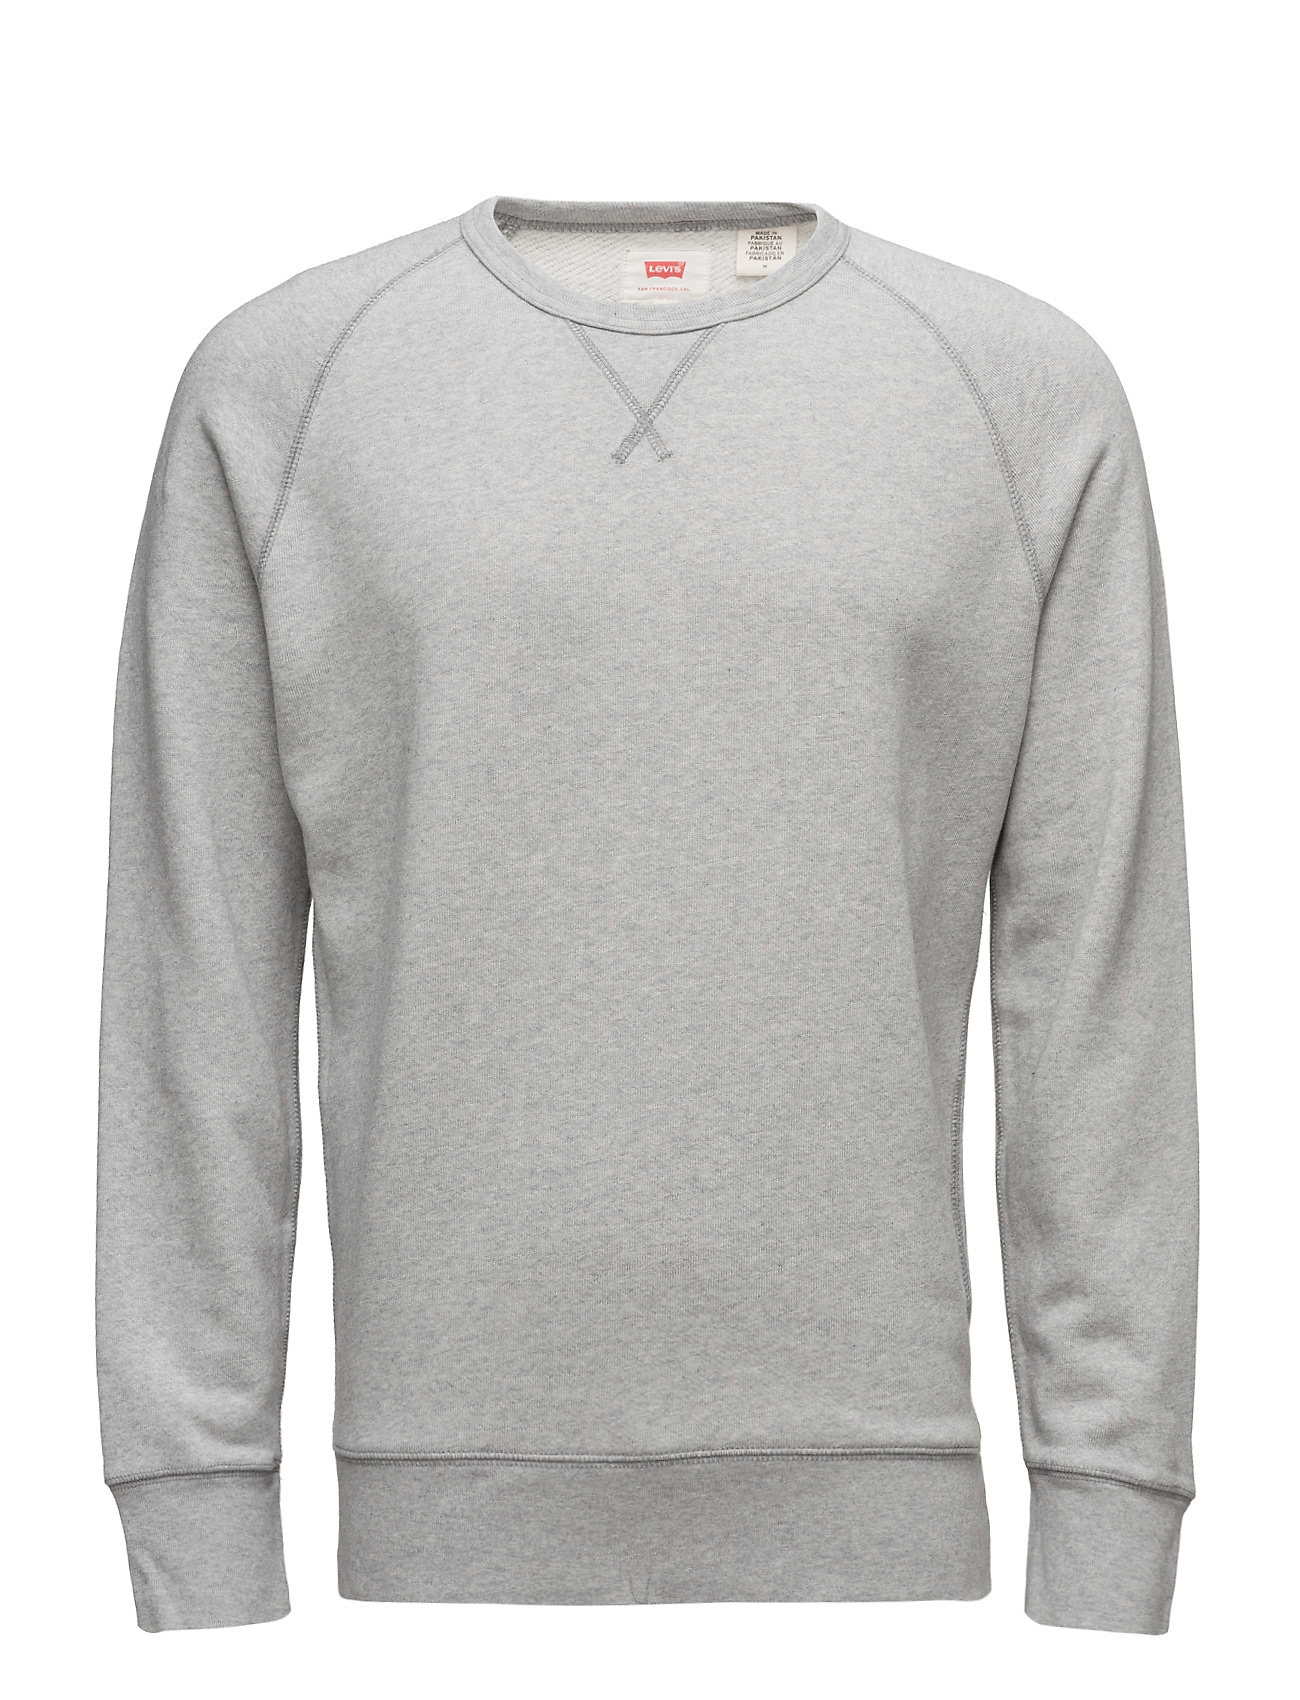 Original Crew 3 Medium Grey He thumbnail